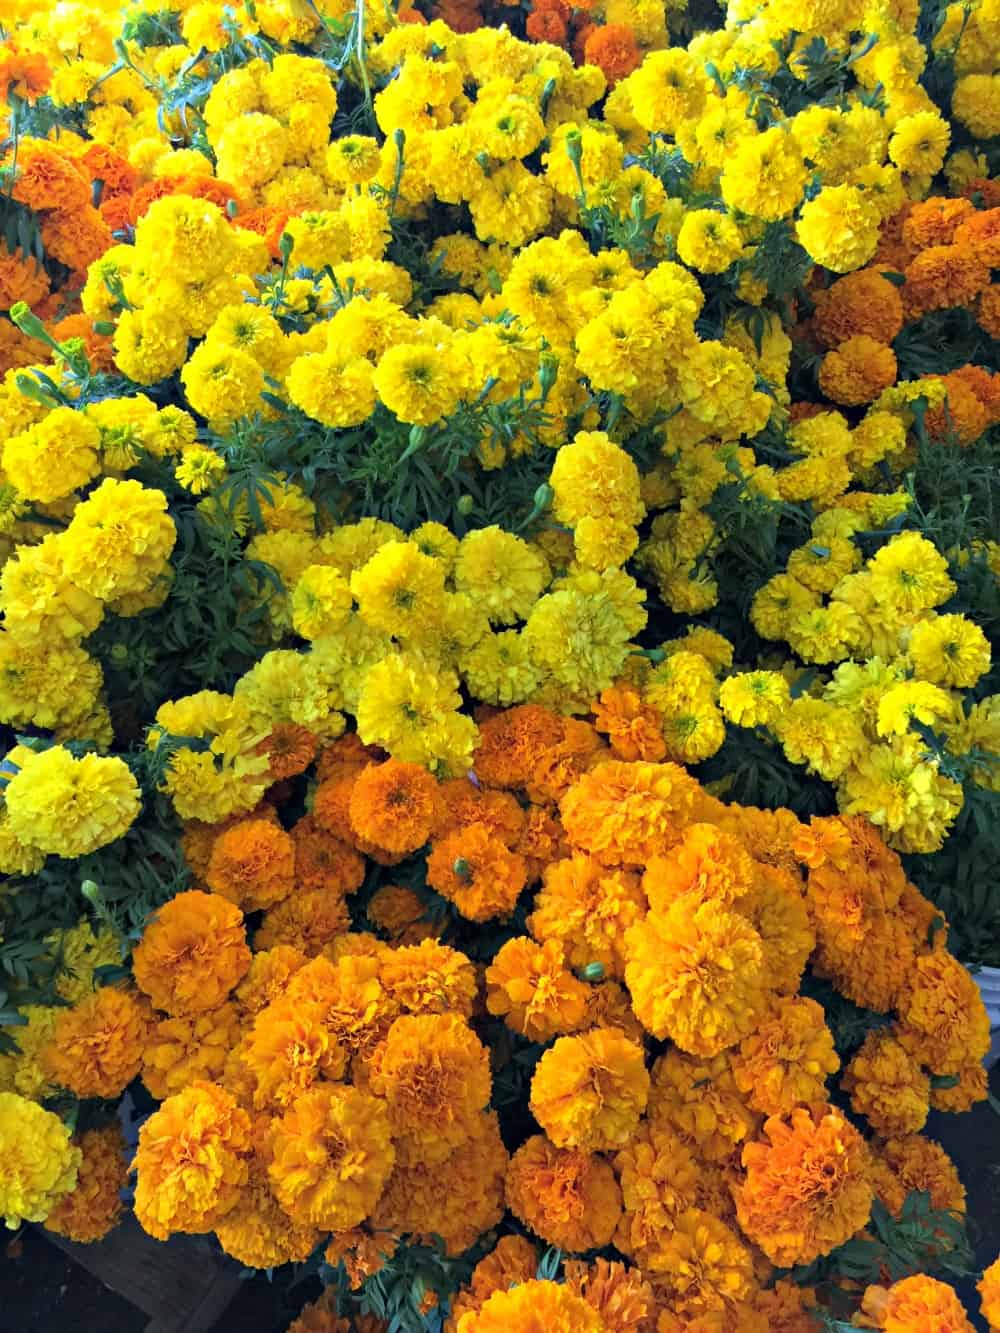 Orange and yellow marigolds clustered together.